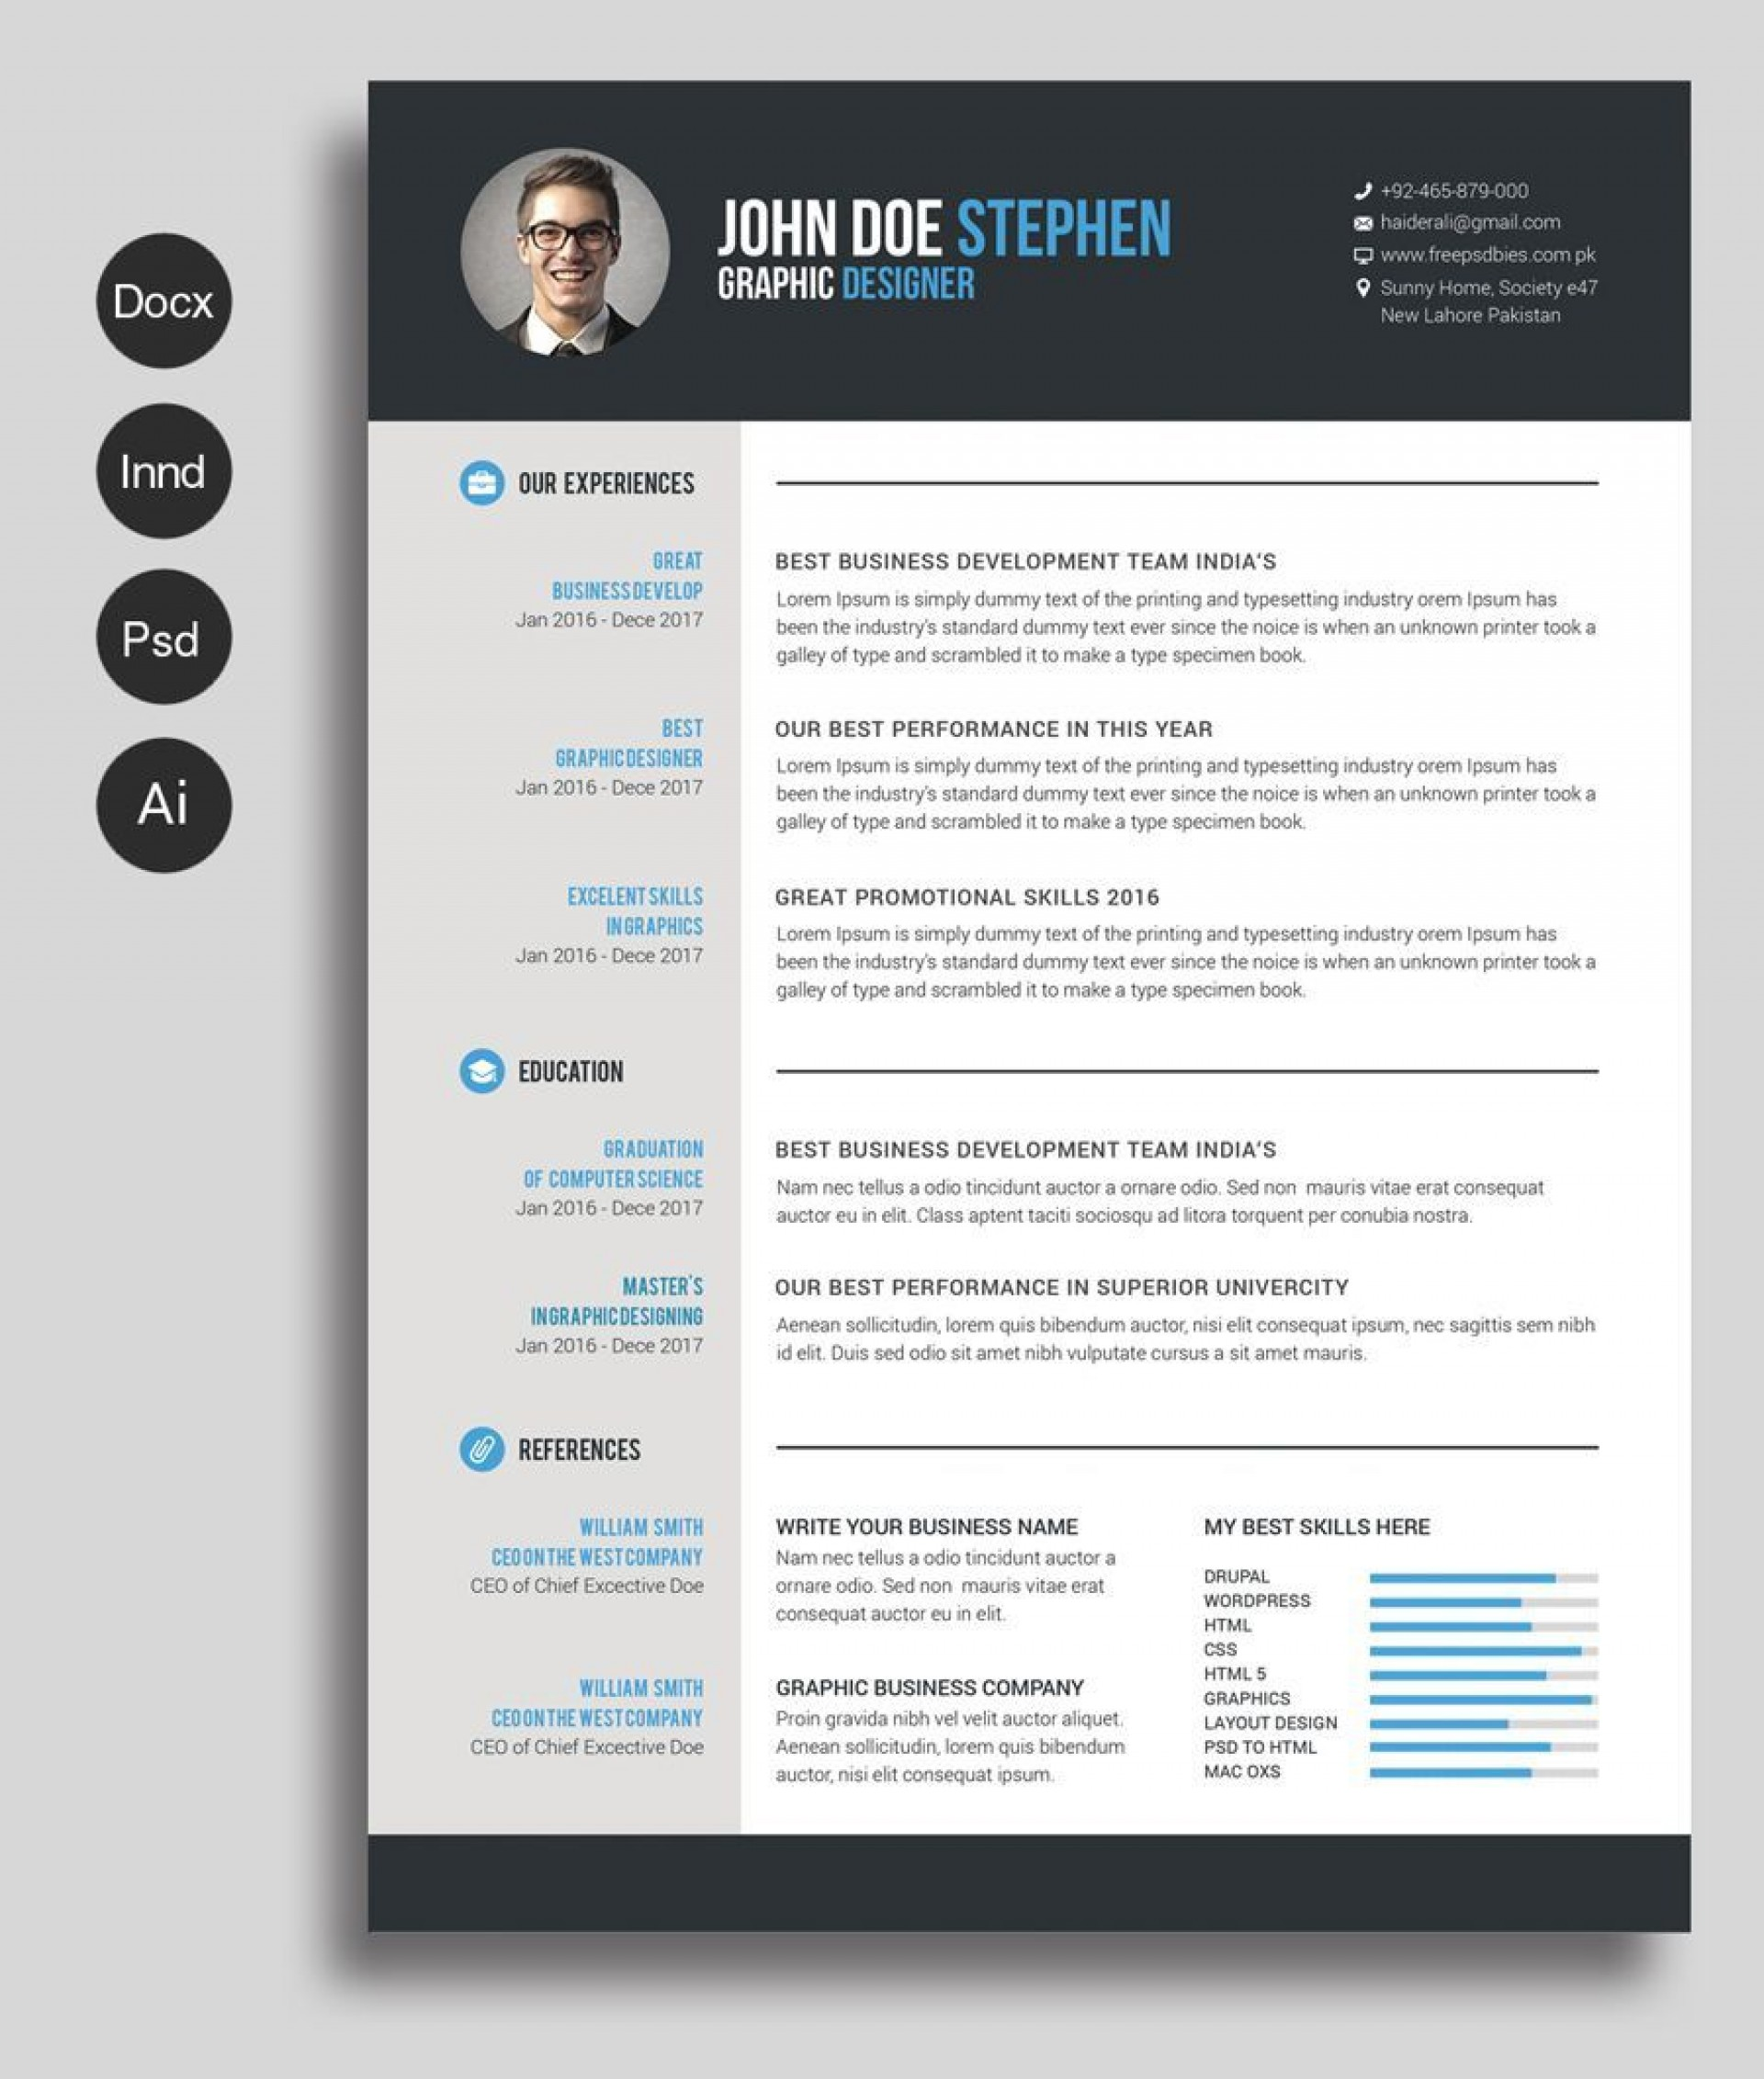 000 Unusual Resume Template Word 2003 Free Download Concept  Downloads1920